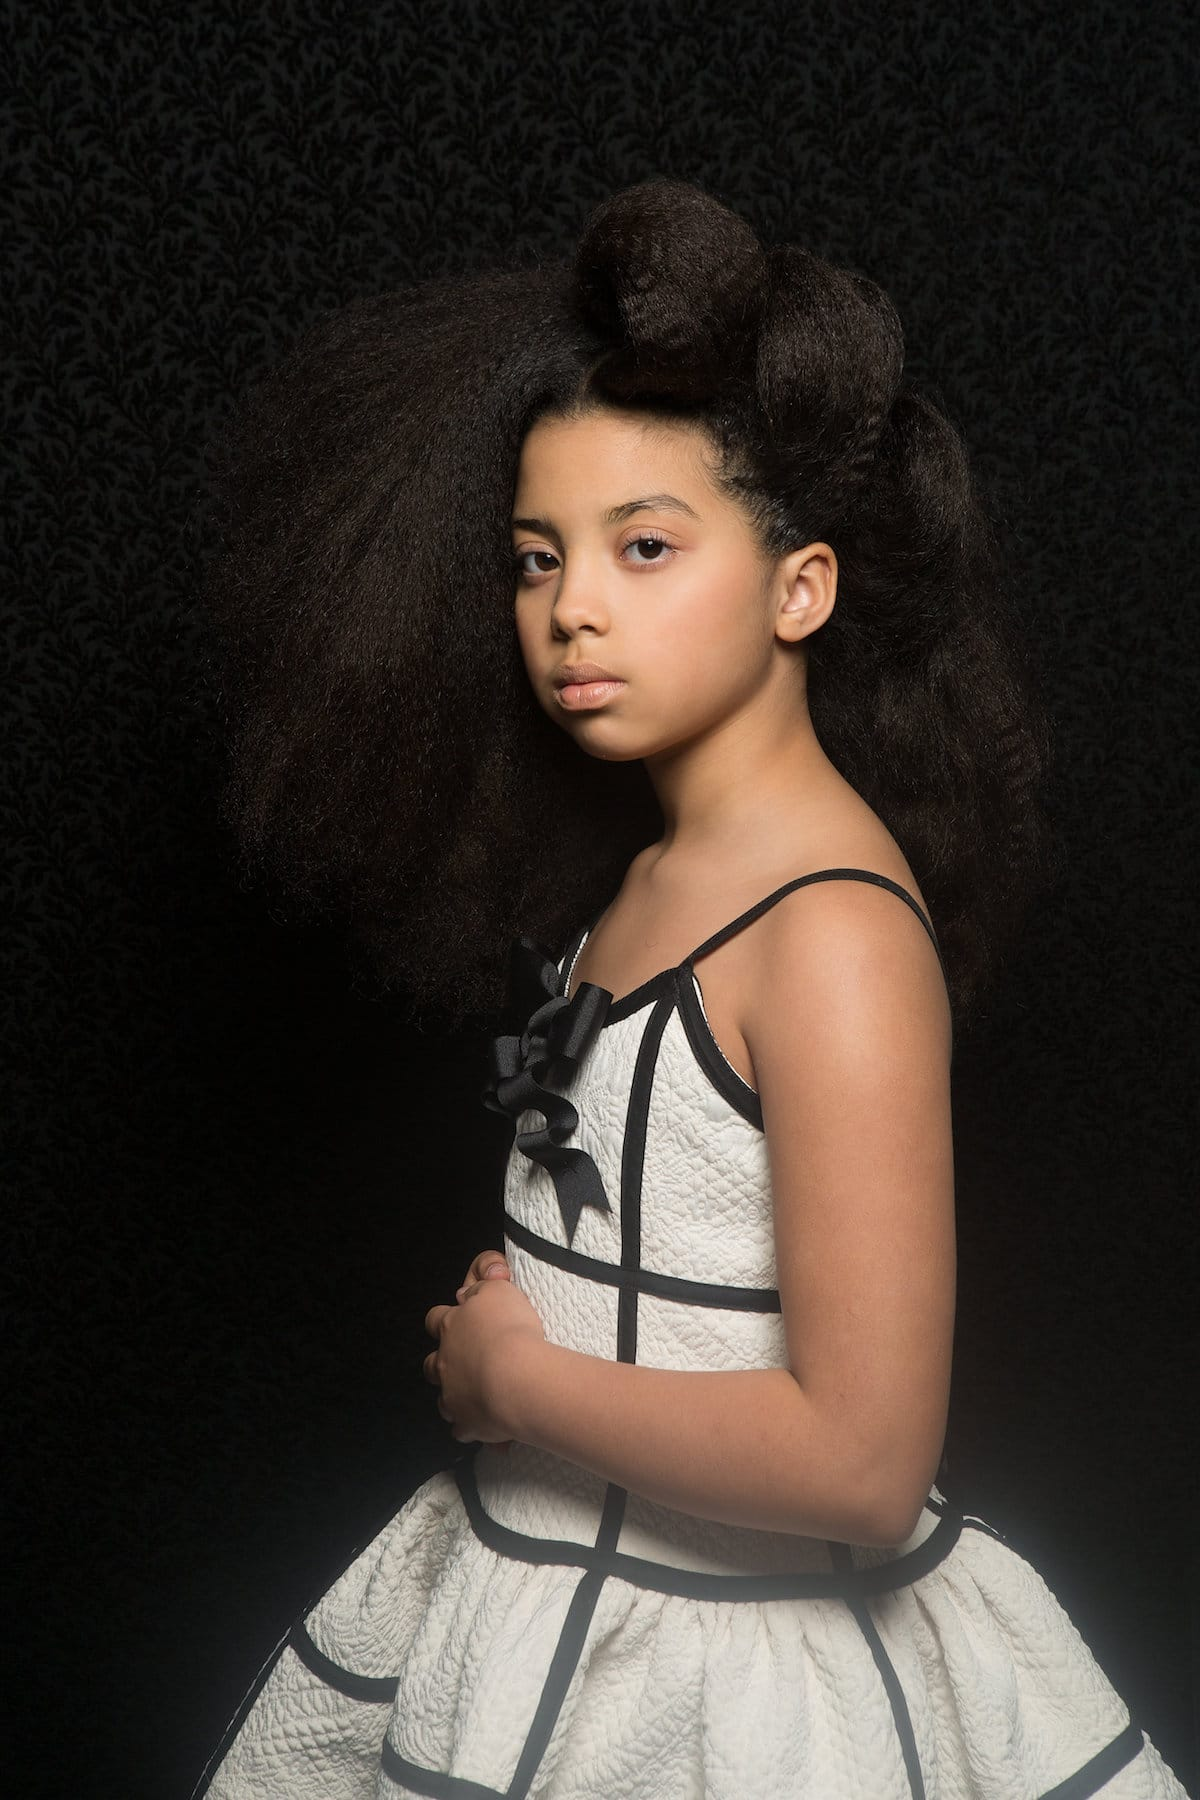 VIRAL KIDS: THESE YOUNG MODELS ARE SHOWING OFF THE BEAUTY